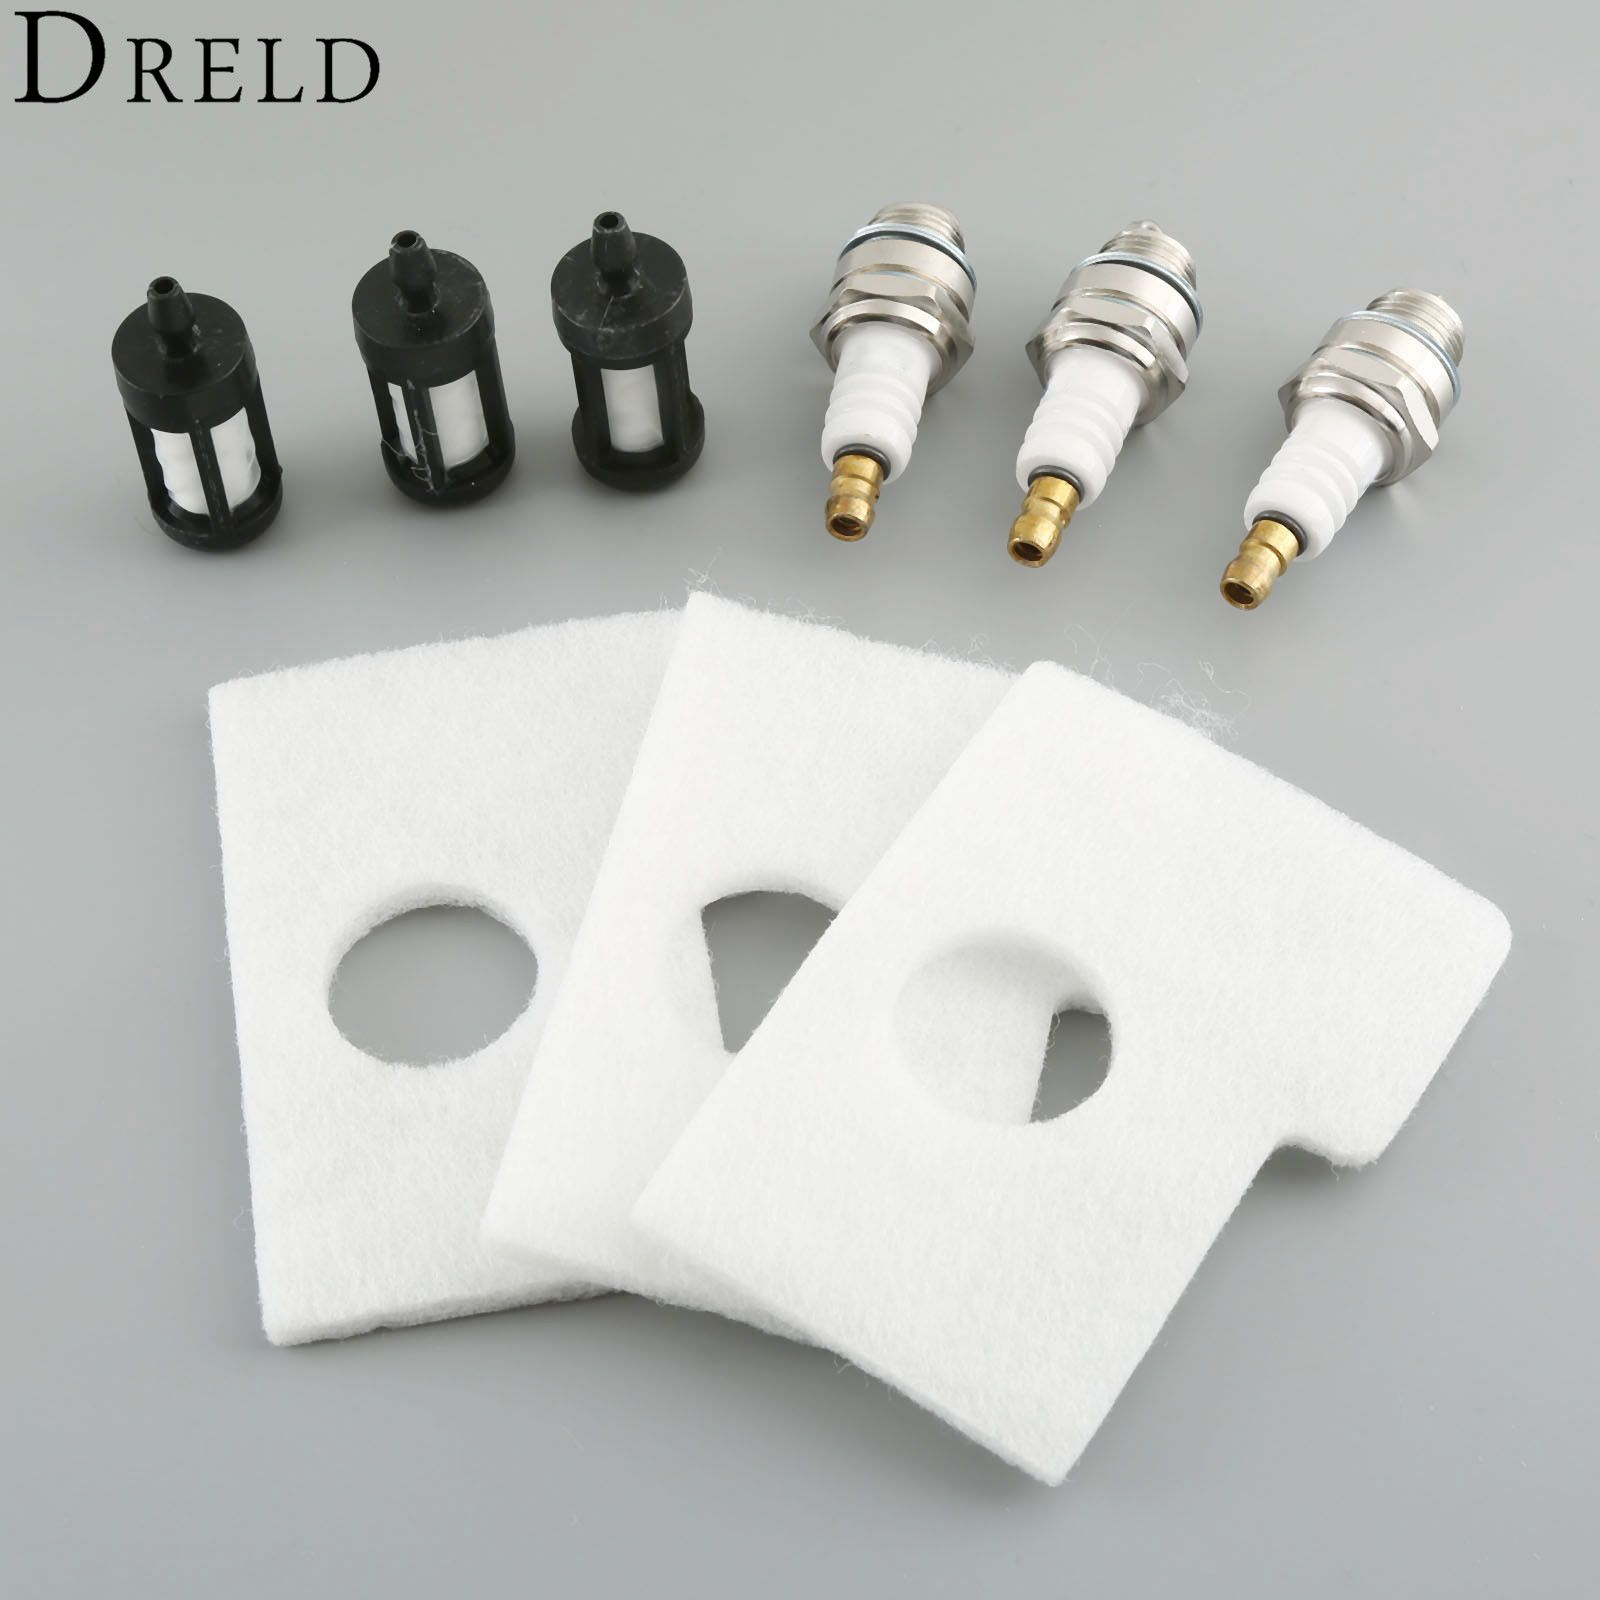 DRELD 9Pcs/set Air Fuel Filter Spark Plug Kit For STIHL MS180 MS170 018 017 Chainsaw #1130 124 0800 Garden Tool Parts